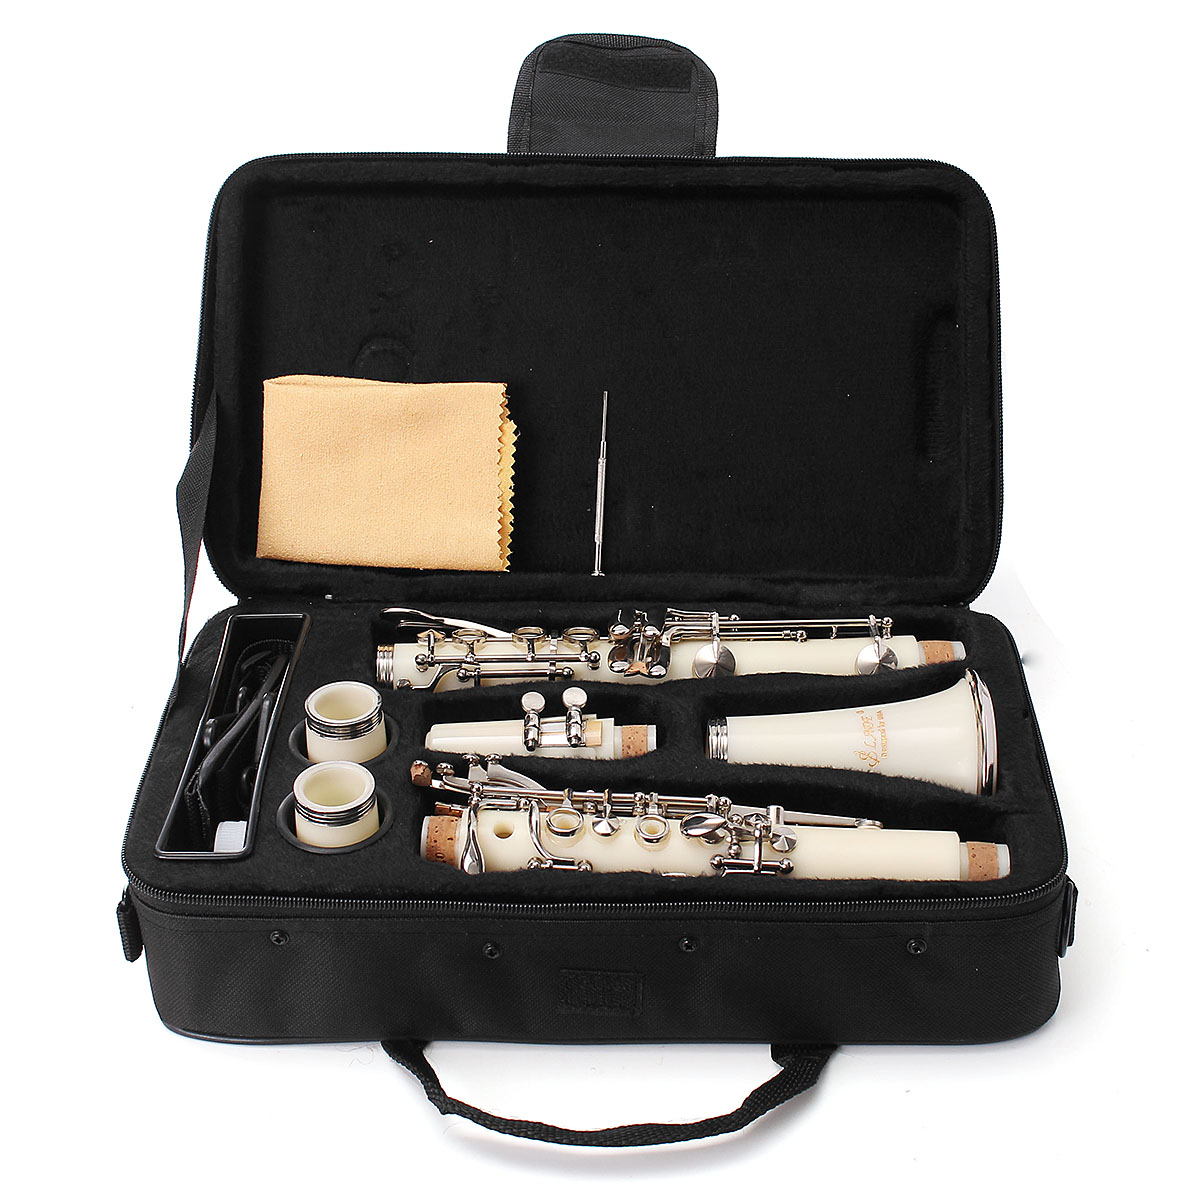 Bb-Clarinet-Professional-Musical-Instruments-Beginner-with-Padded-Case-5-Colors